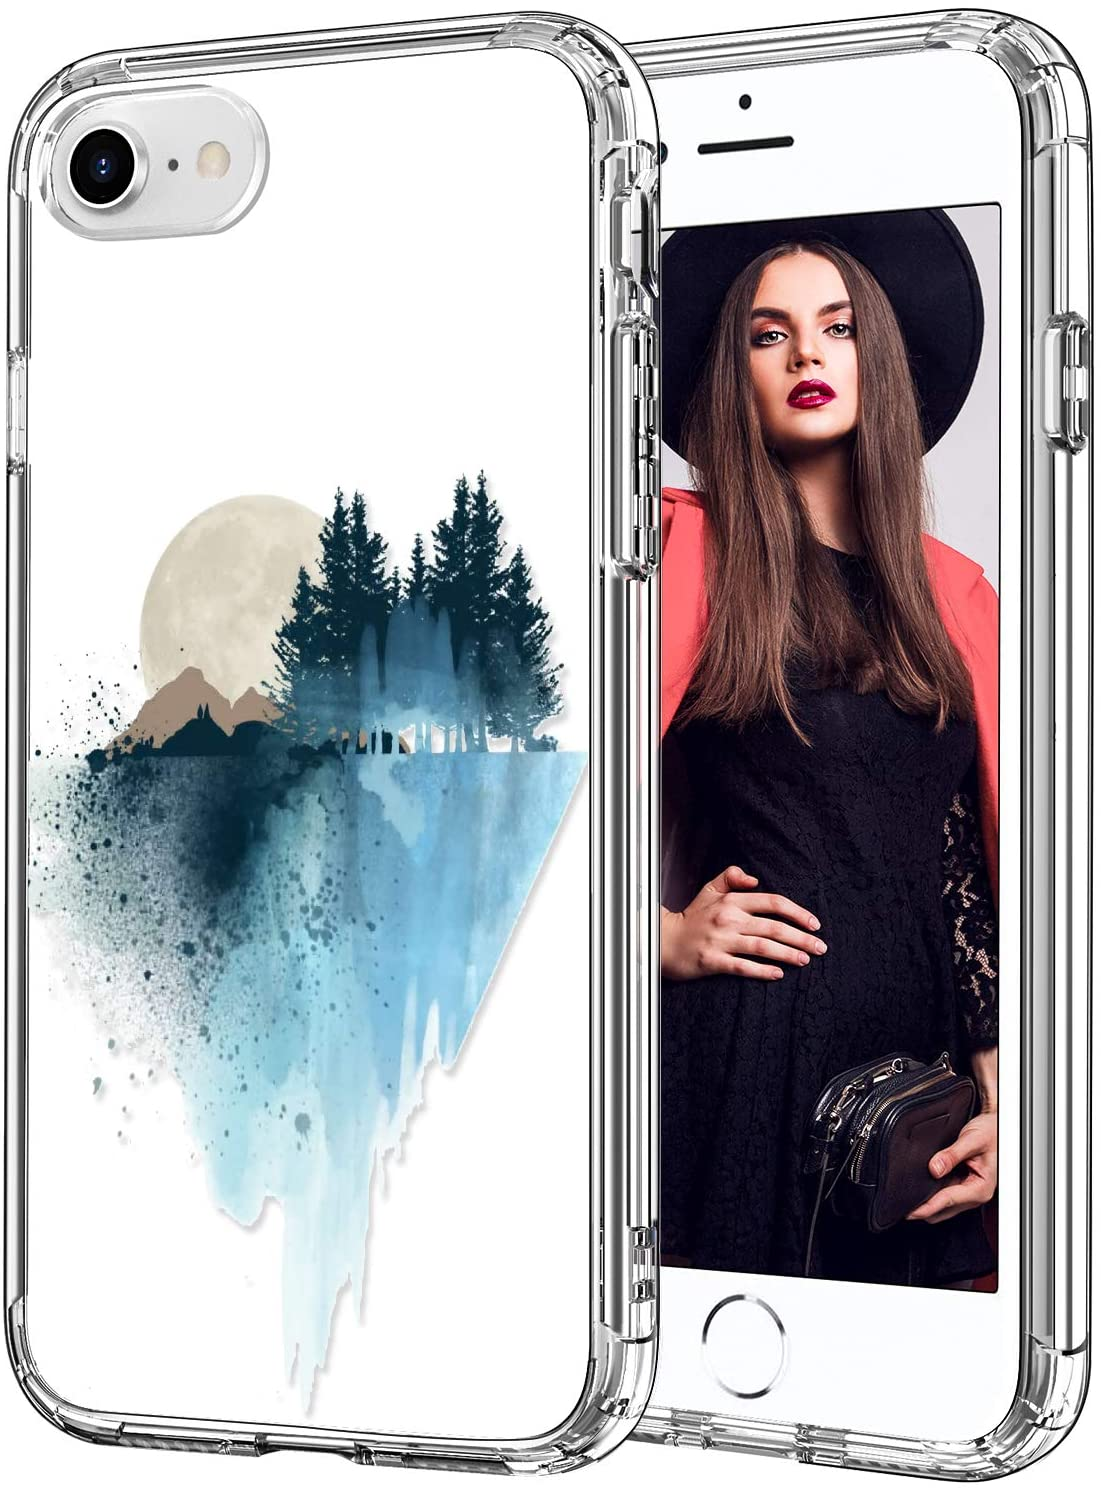 ICEDIO iPhone SE 2020 Case,iPhone 8 Case,iPhone 7 Case with Screen Protector,Clear with Fashion Designs for Girls Women,Shockproof Protective Phone Case for iPhone 7/8/SE 2020 Blue Paintings